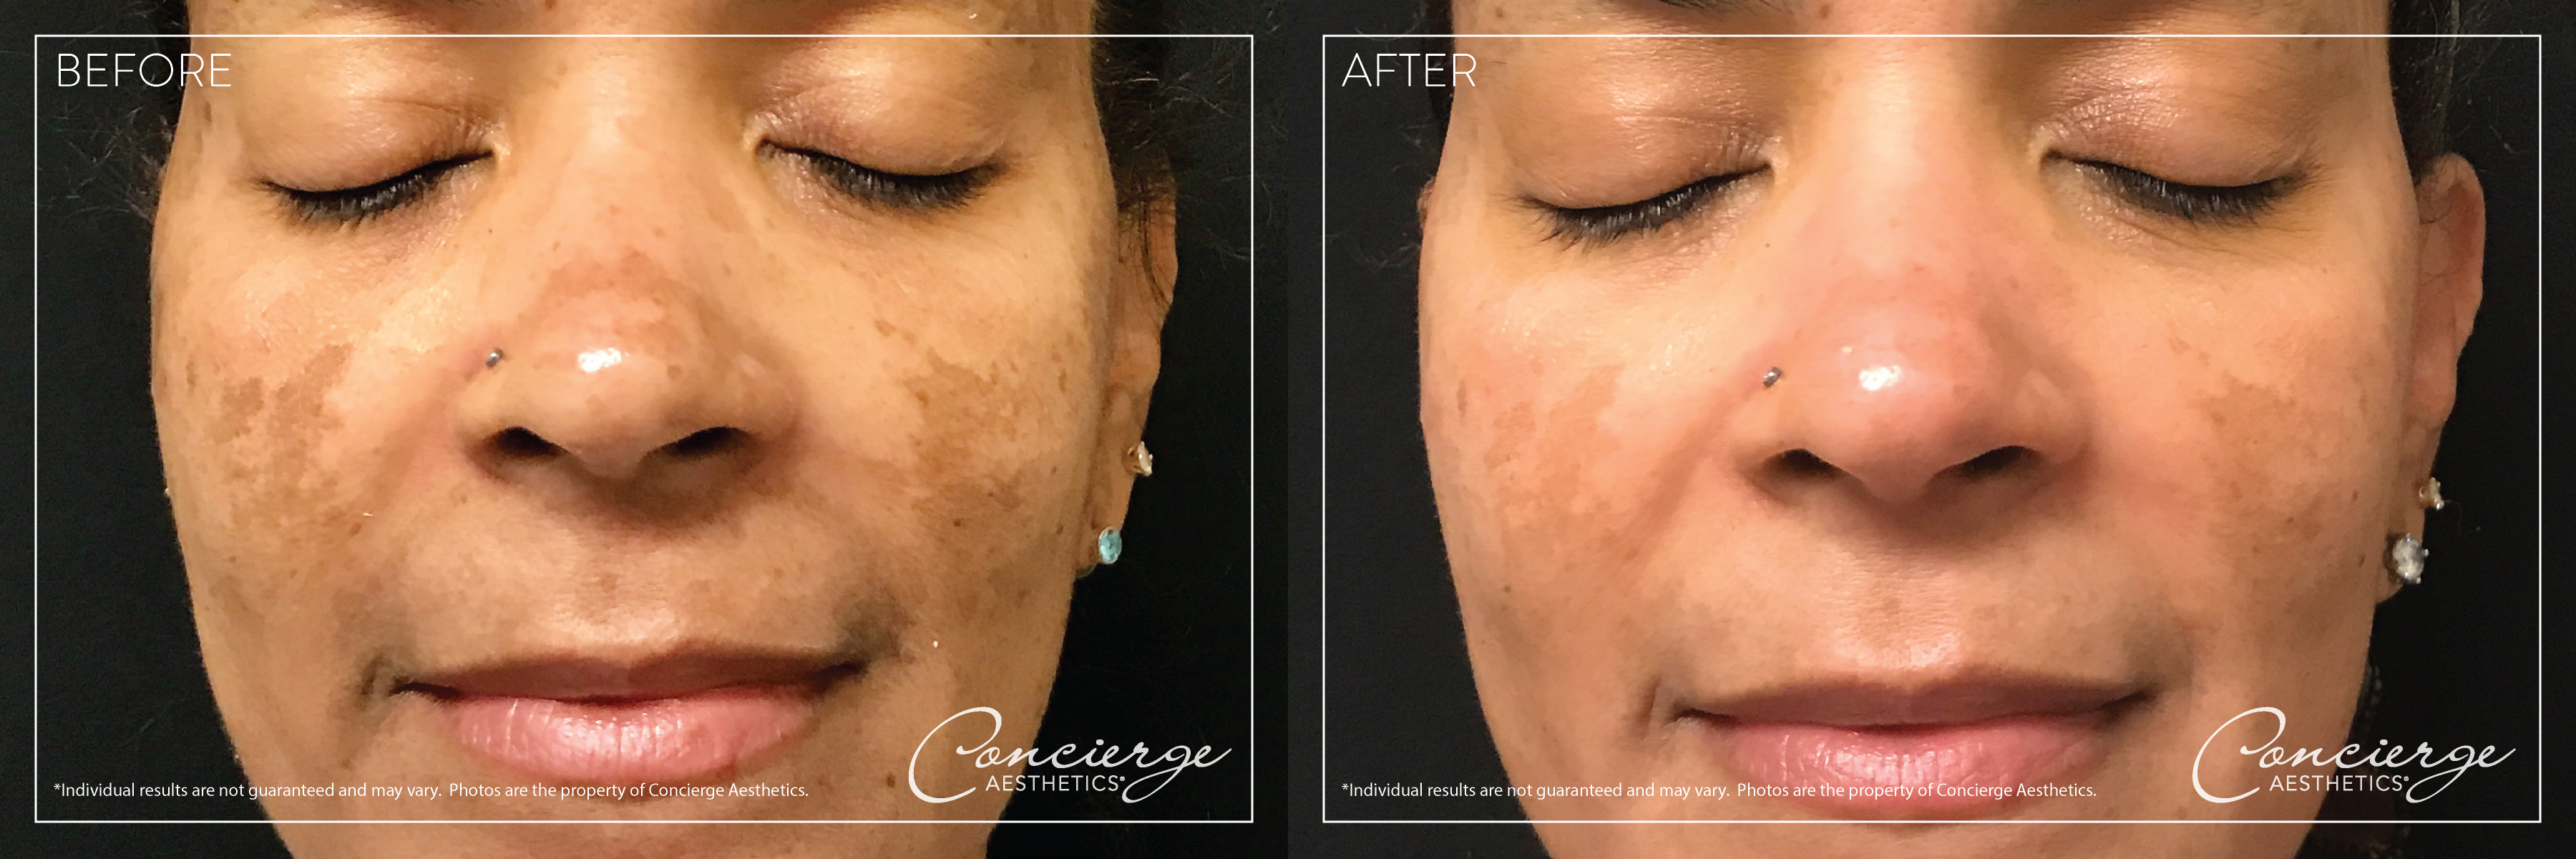 Perfect Derma Peel - Before and After Photos